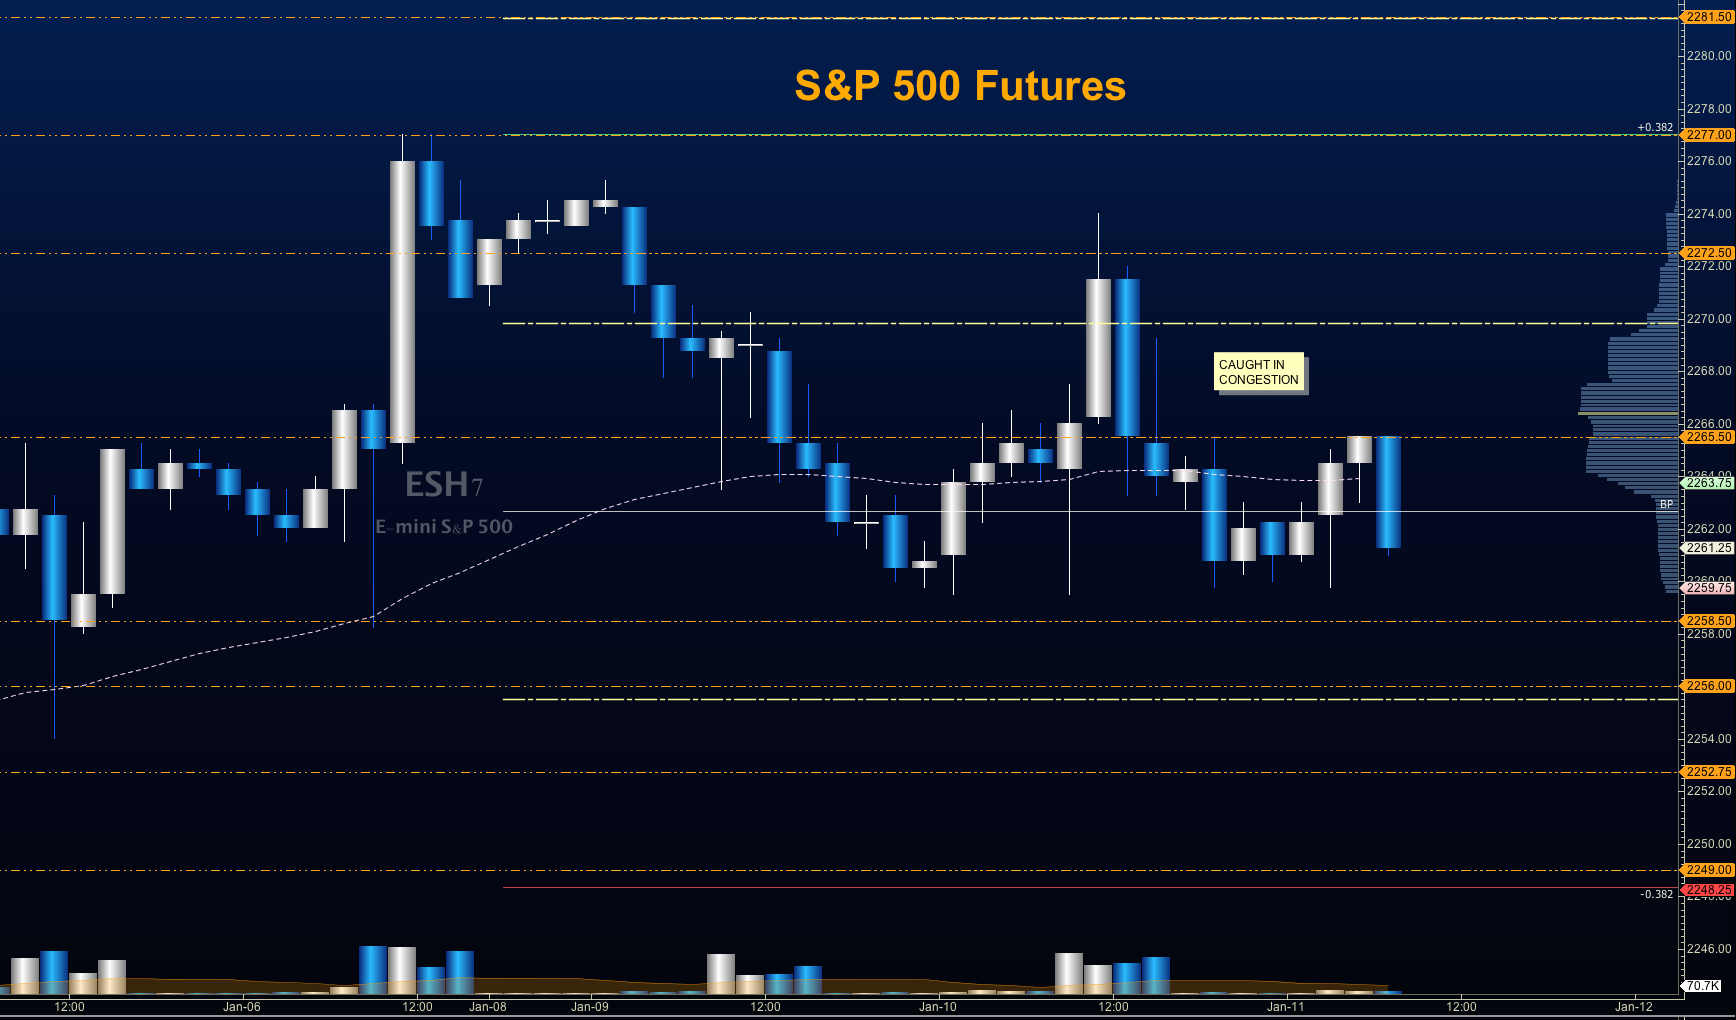 s&p 500 futures trading price targets january 11